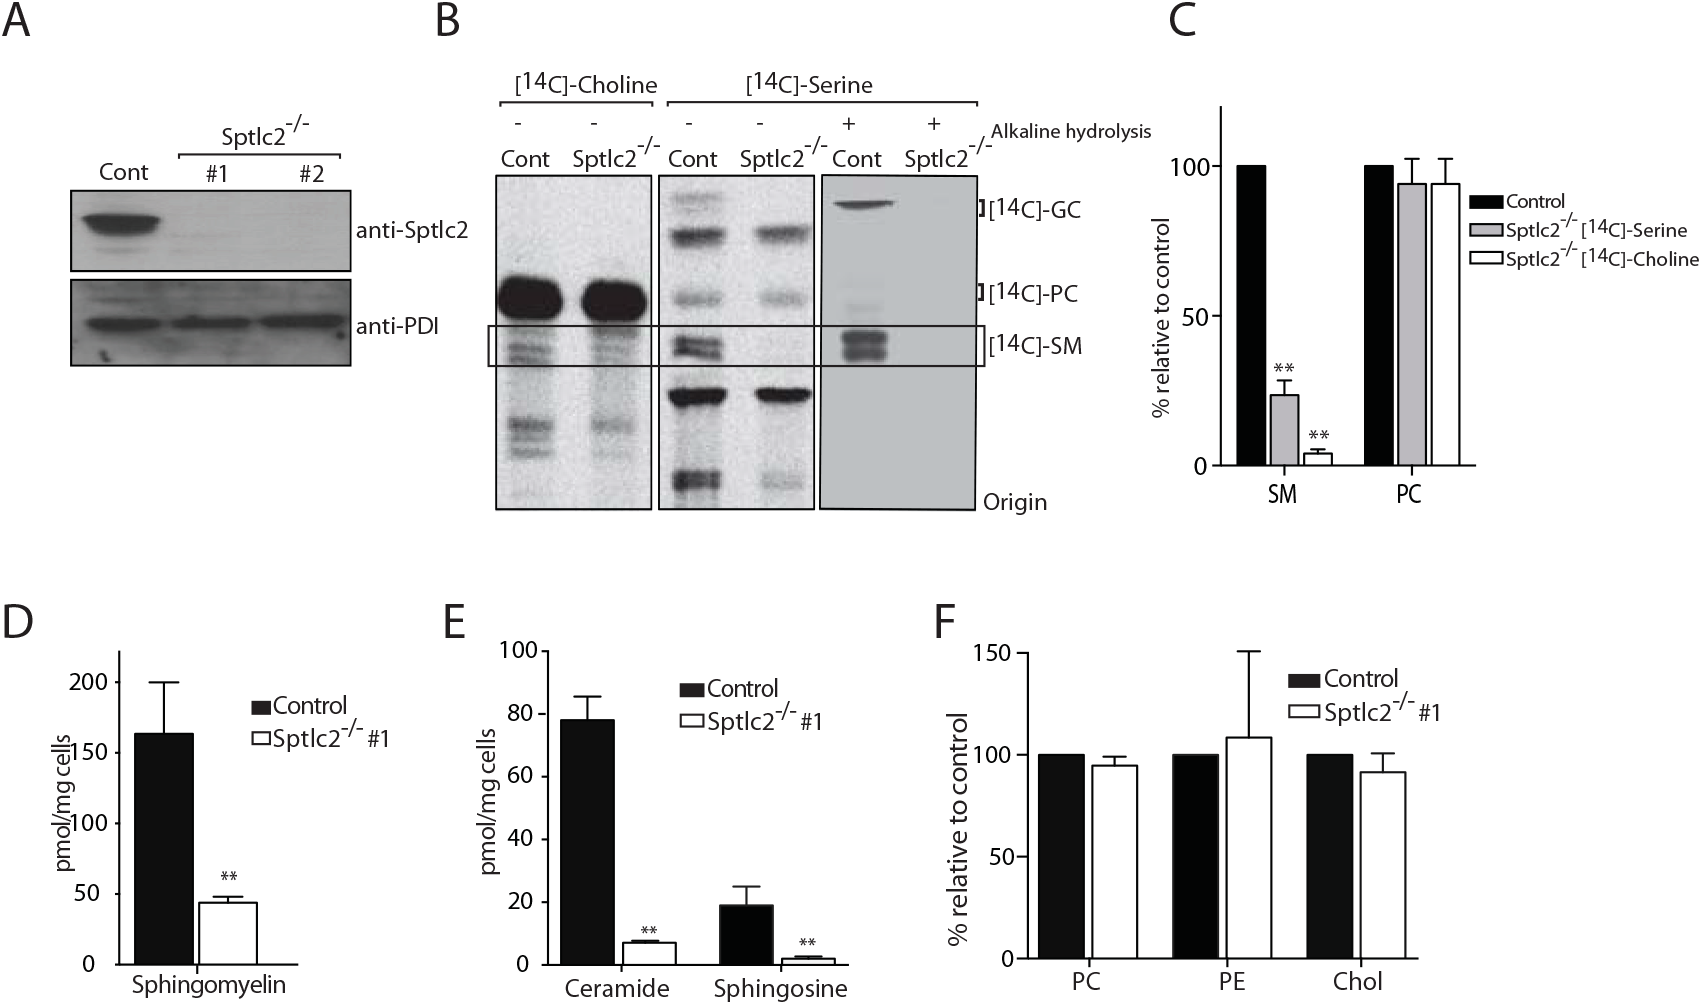 CRISPR/Cas9-mediated deletion of Sptlc2 in DC2.4 cells.